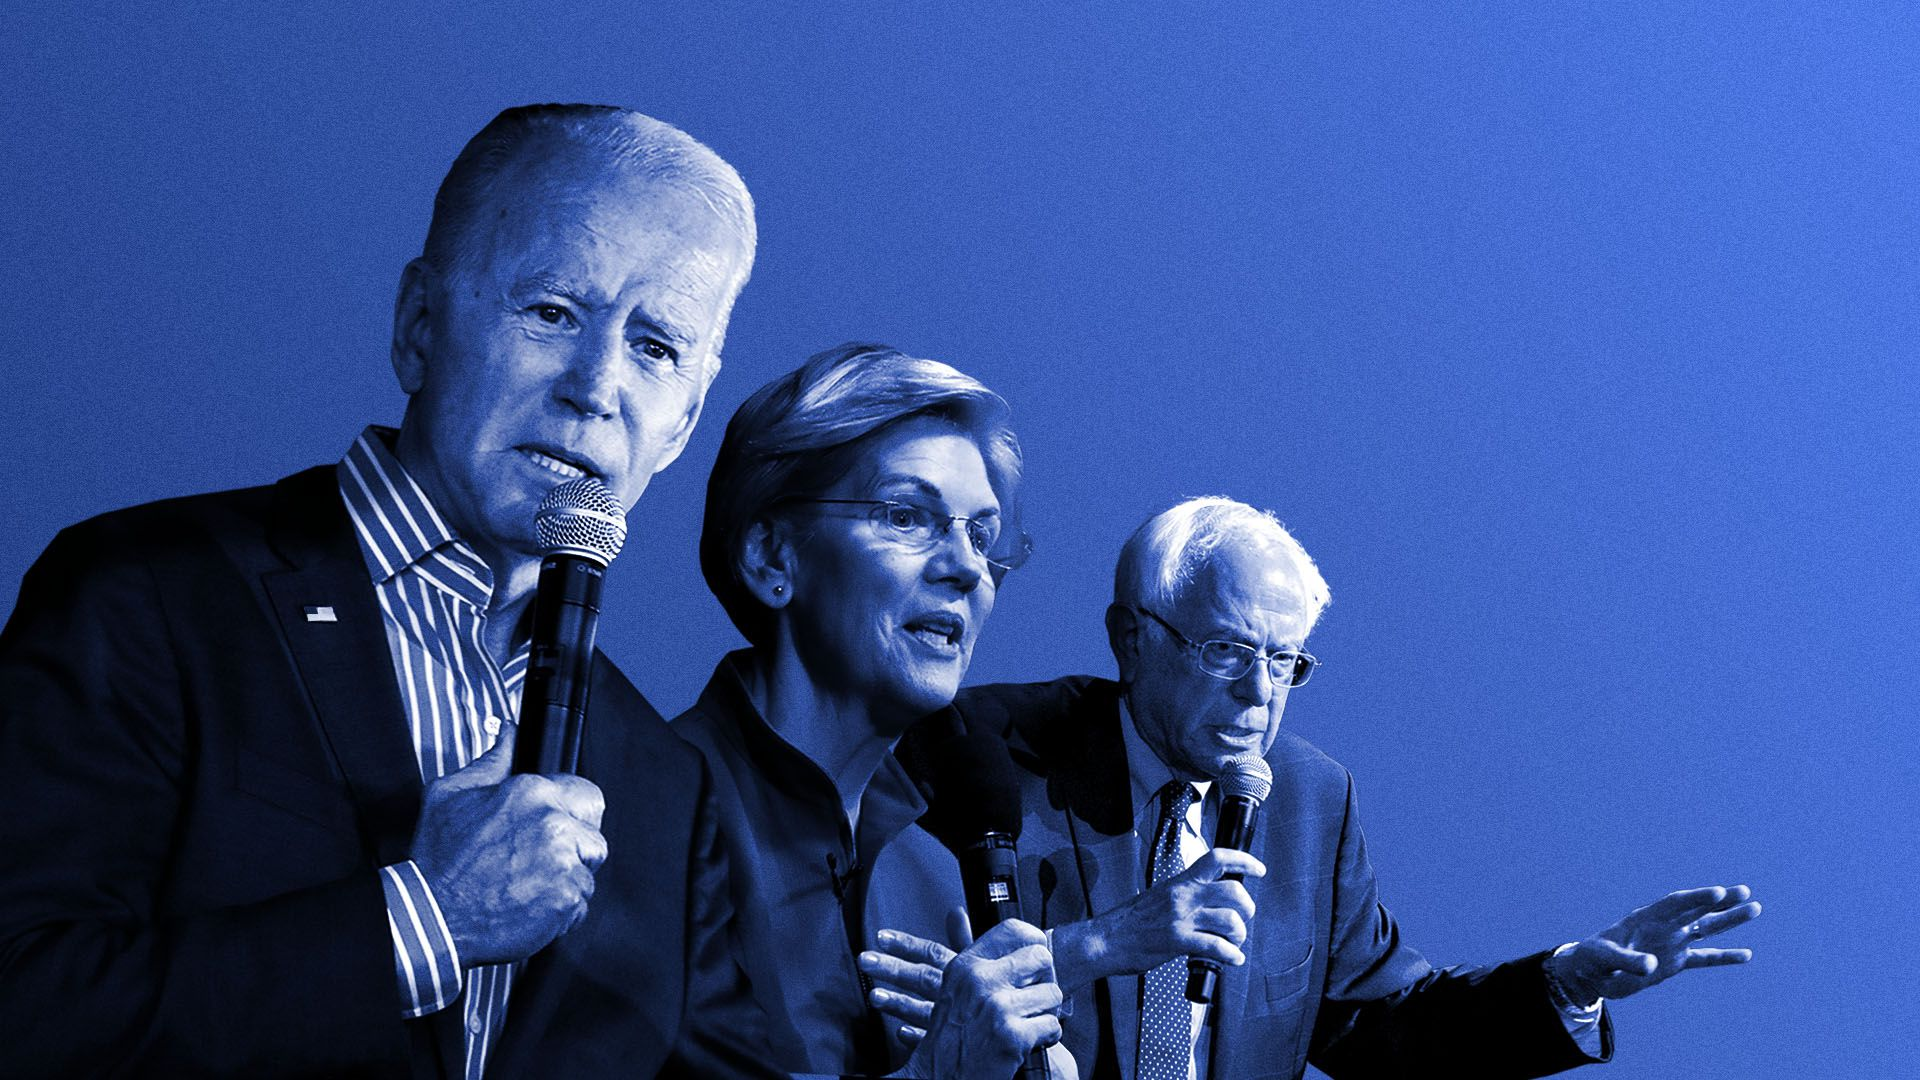 Illustration of Vice President Biden, and senators Warren and Sanders positioned as if  prepping for a race